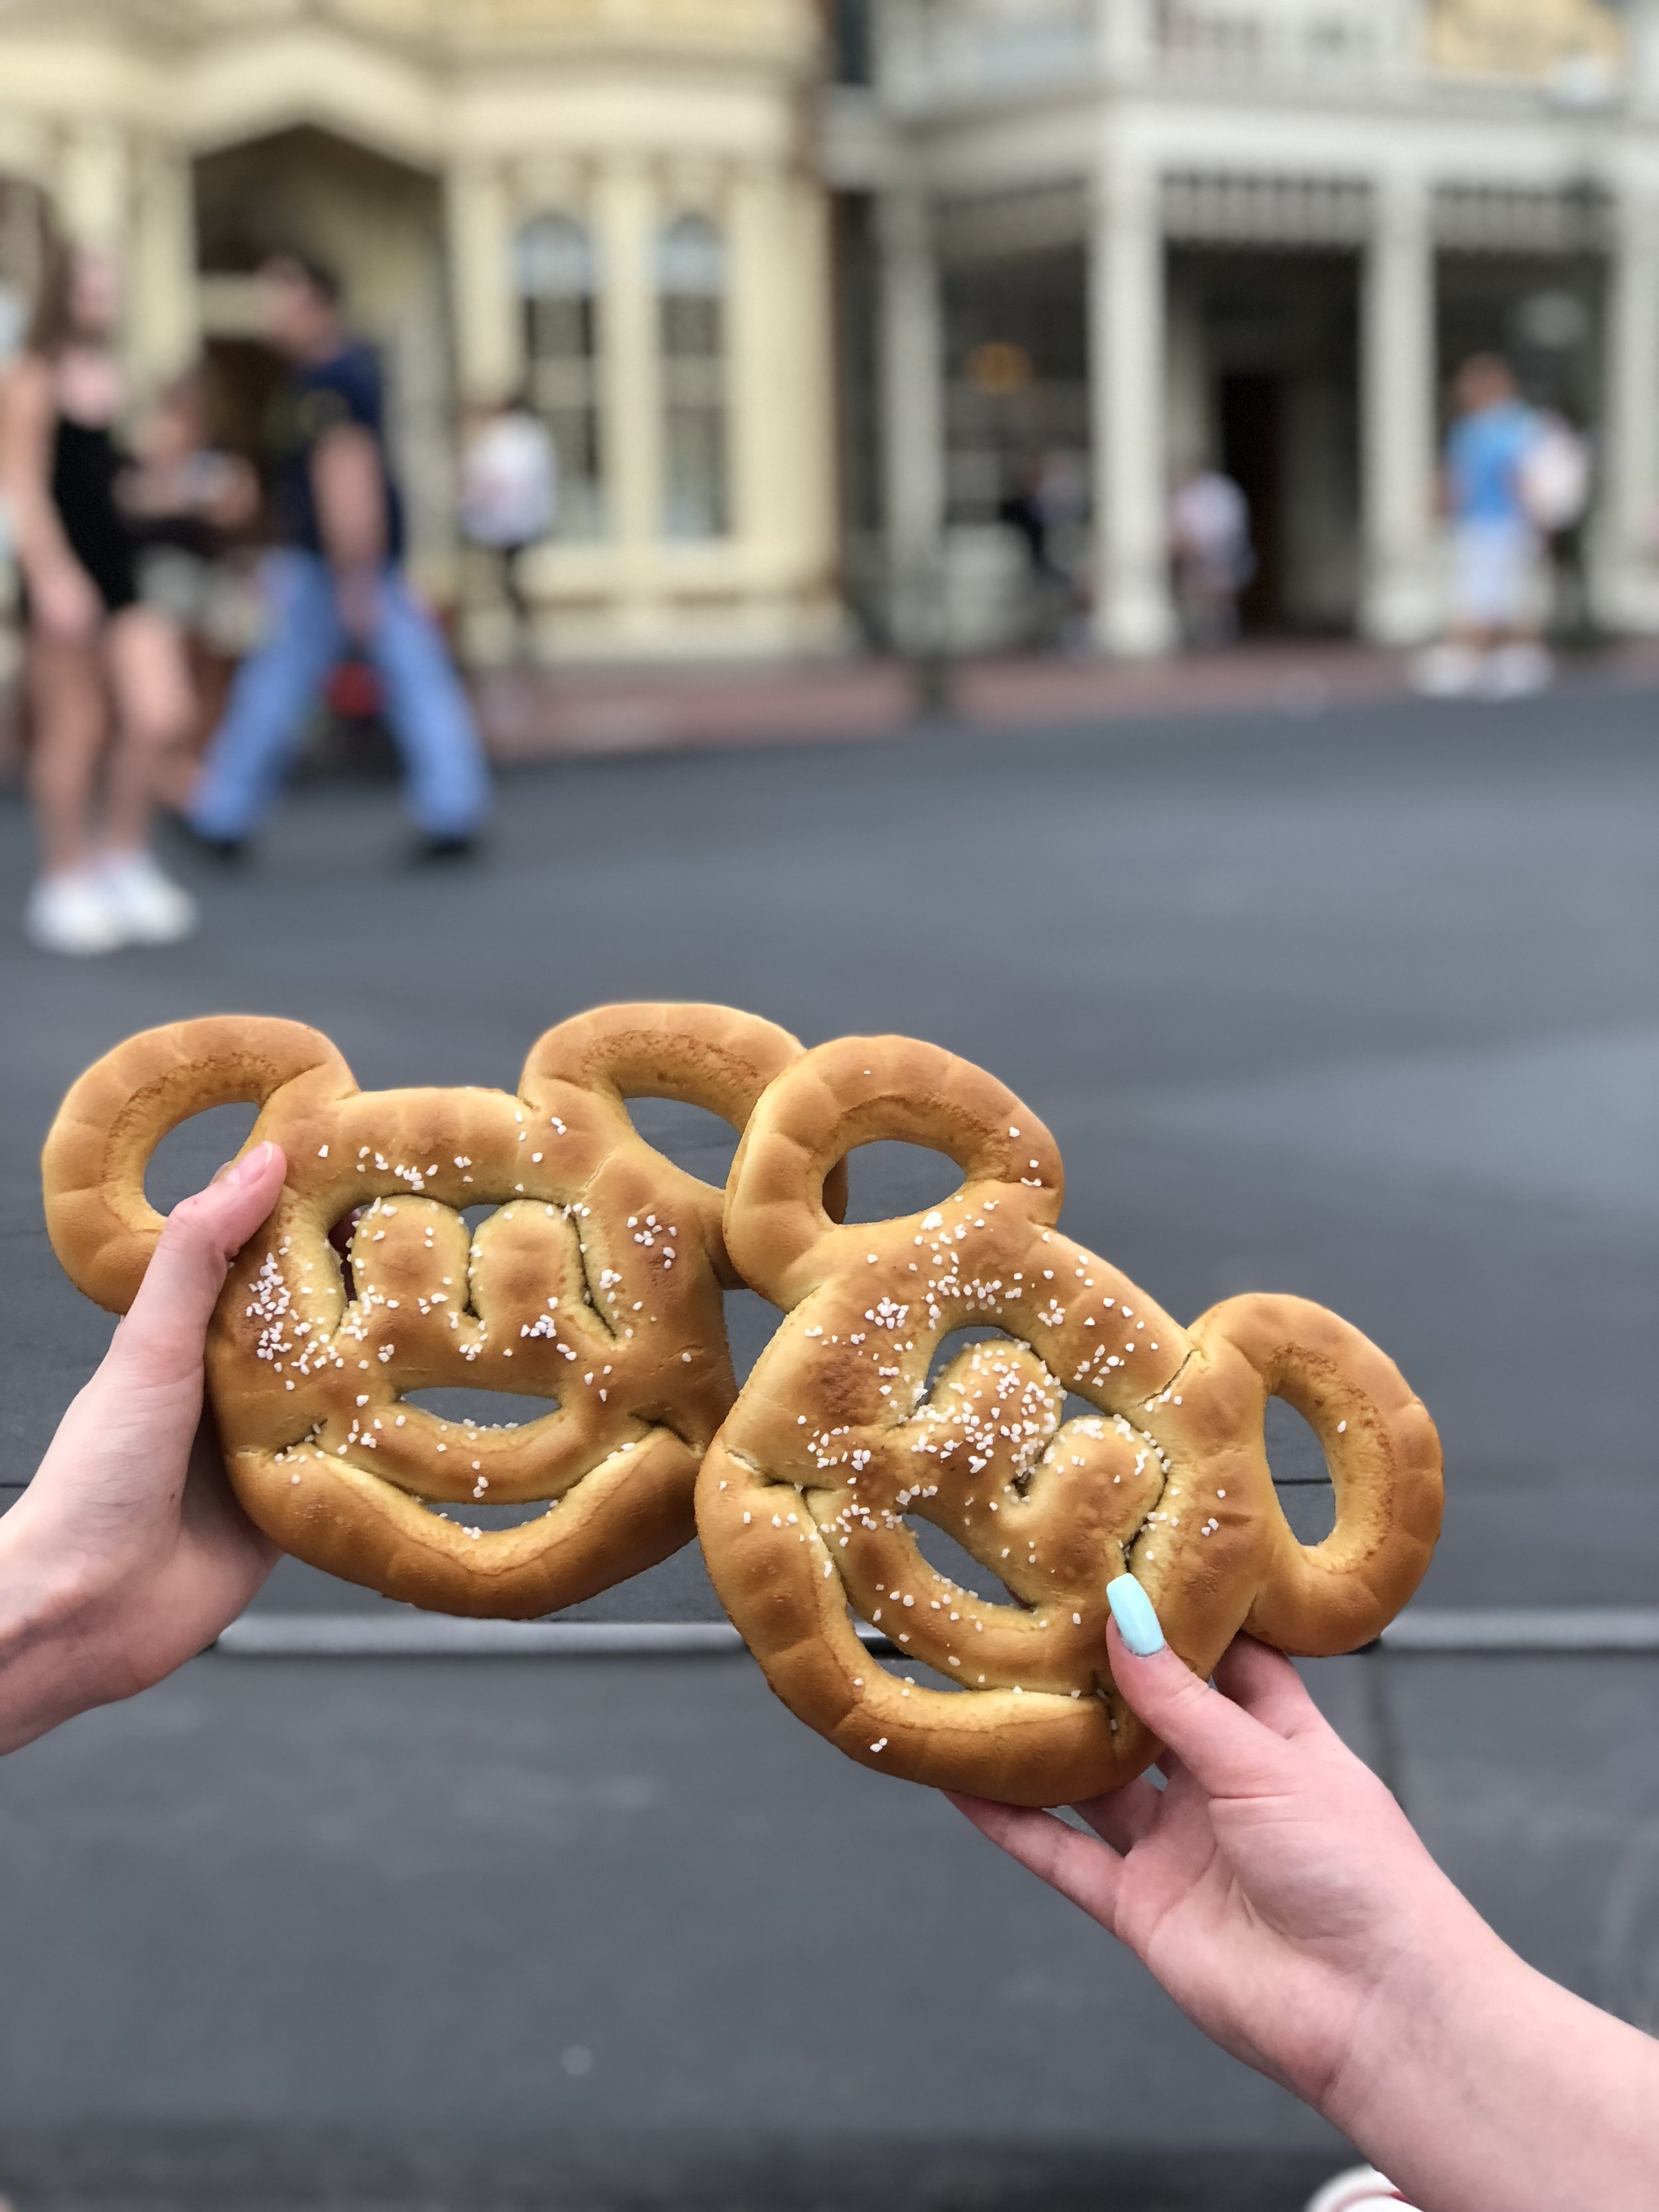 If you need a snack, grab a Mickey shaped pretzel!